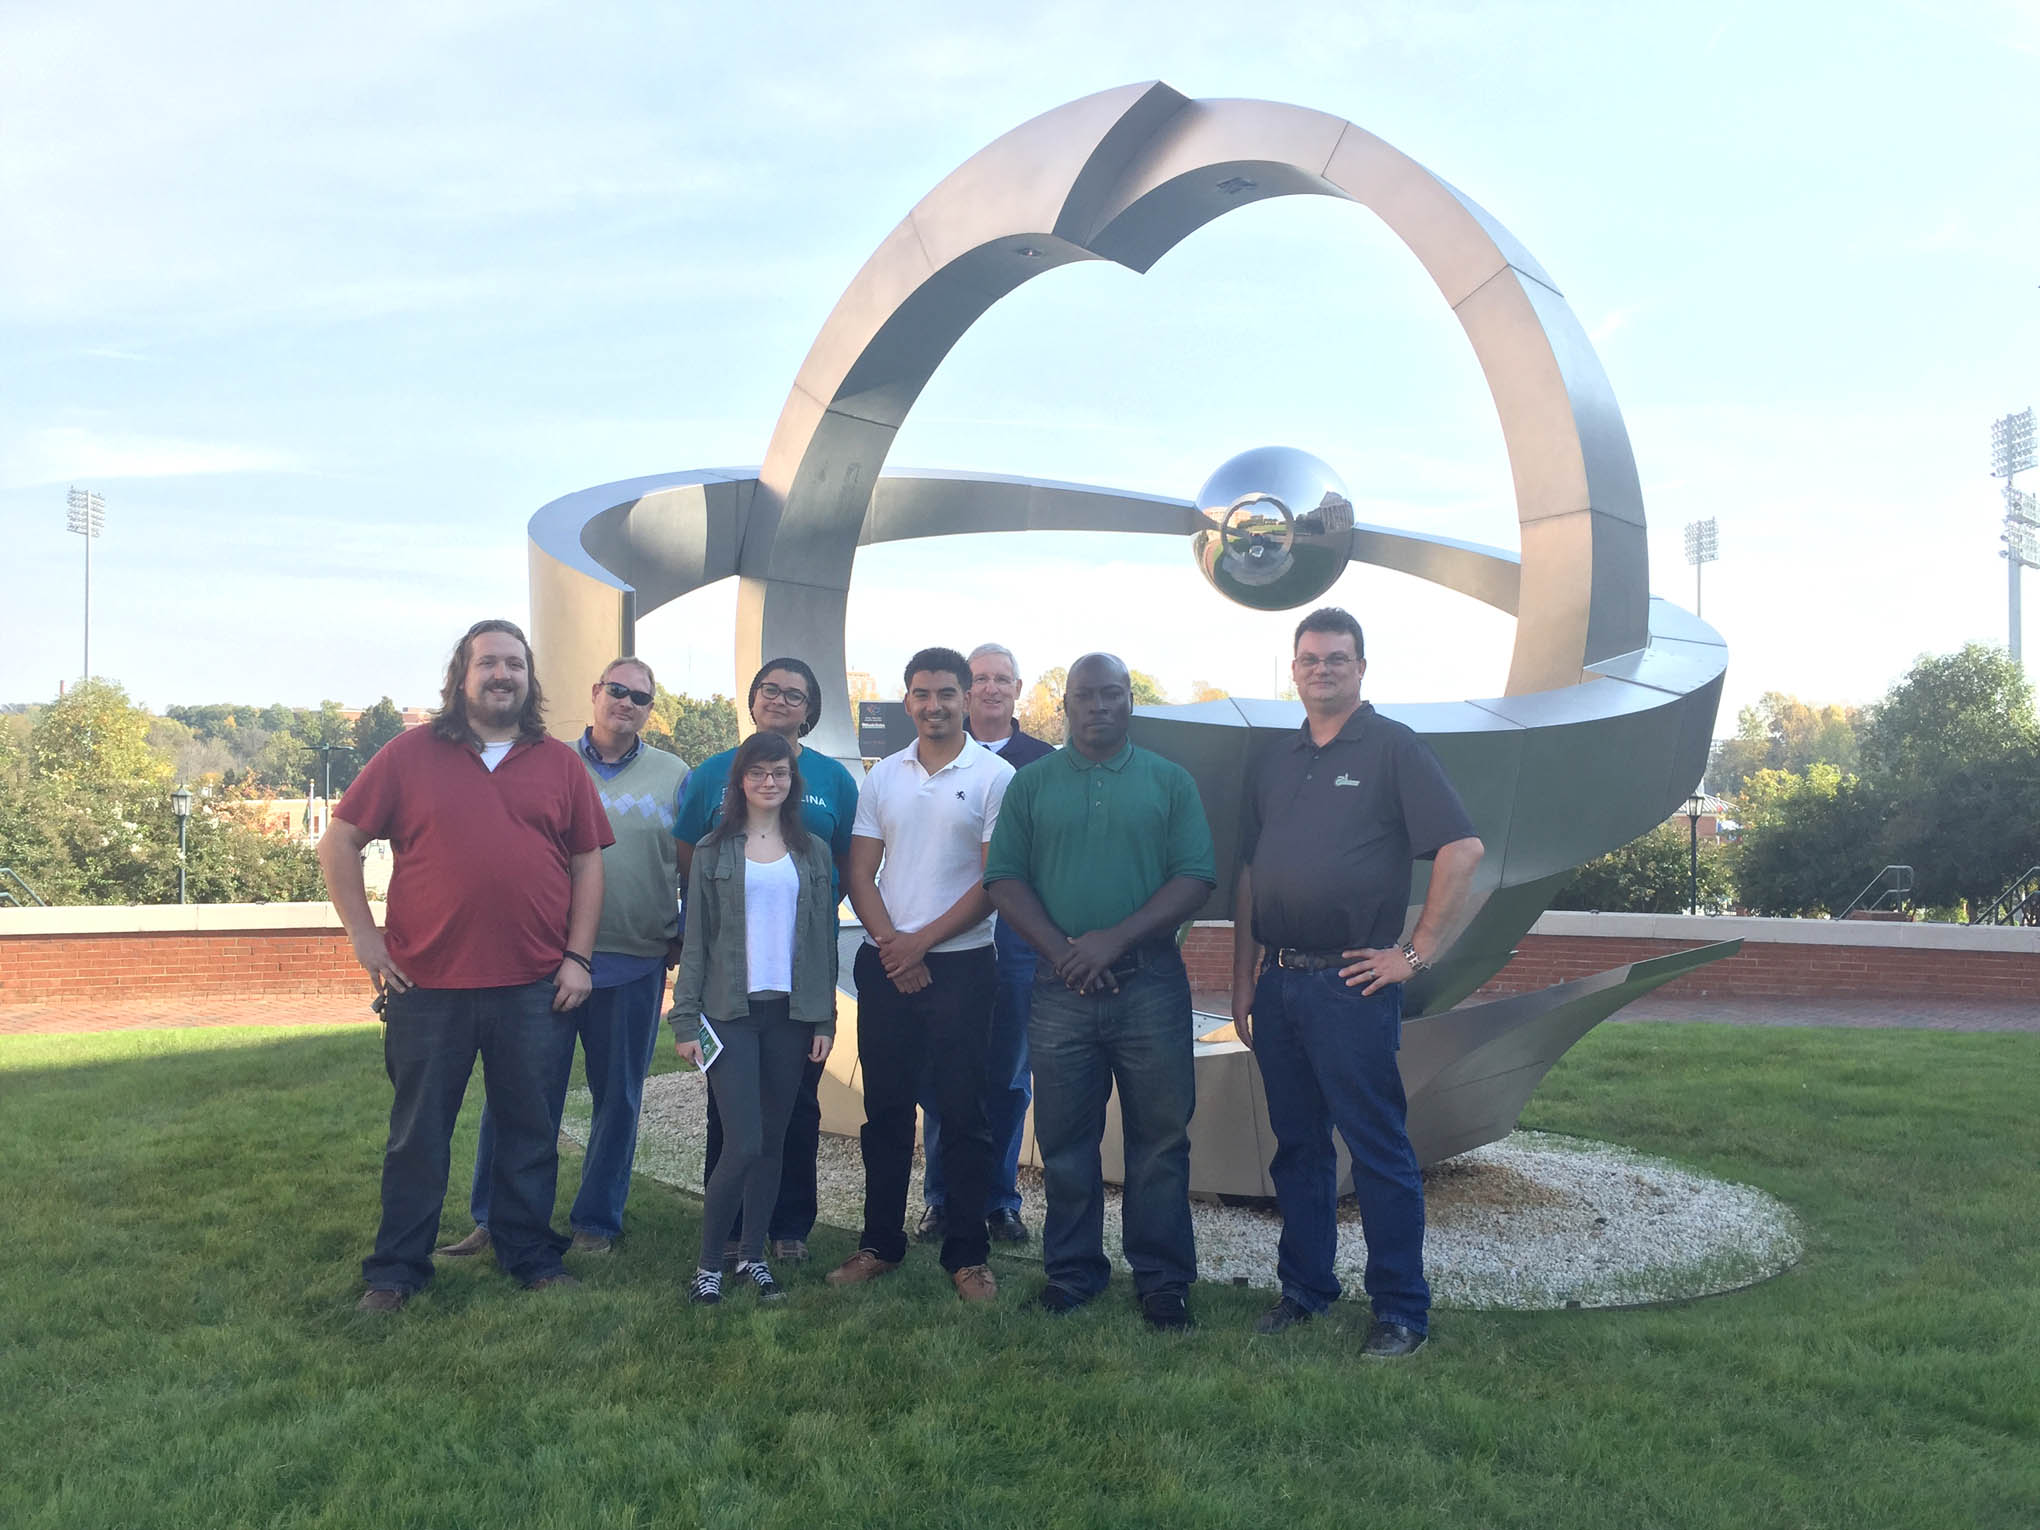 Click to enlarge,  Touring the Optics Research Center on the University of North Carolina at Charlotte's campus were, left to right: Cameron Childress, Scott Parker, Ruth Gietzen, Kyla Ross, Antonio DePaz, Gary Beasley, Christopher Barnes, and Scott Williams.